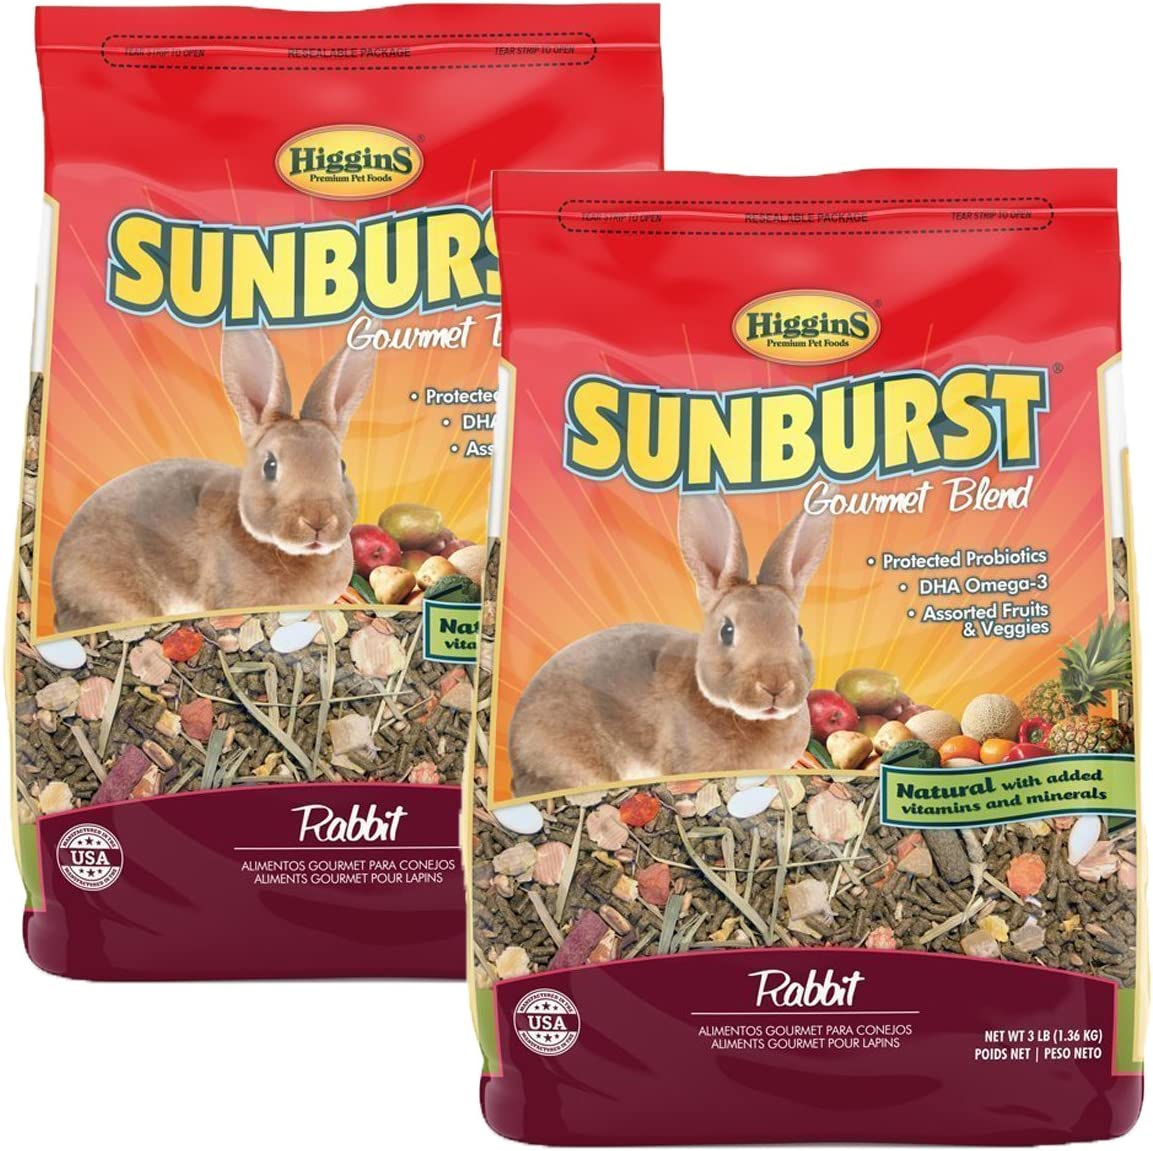 Higgins Sunburst Gourmet Food Mix for Rabbits Net WT 6LB